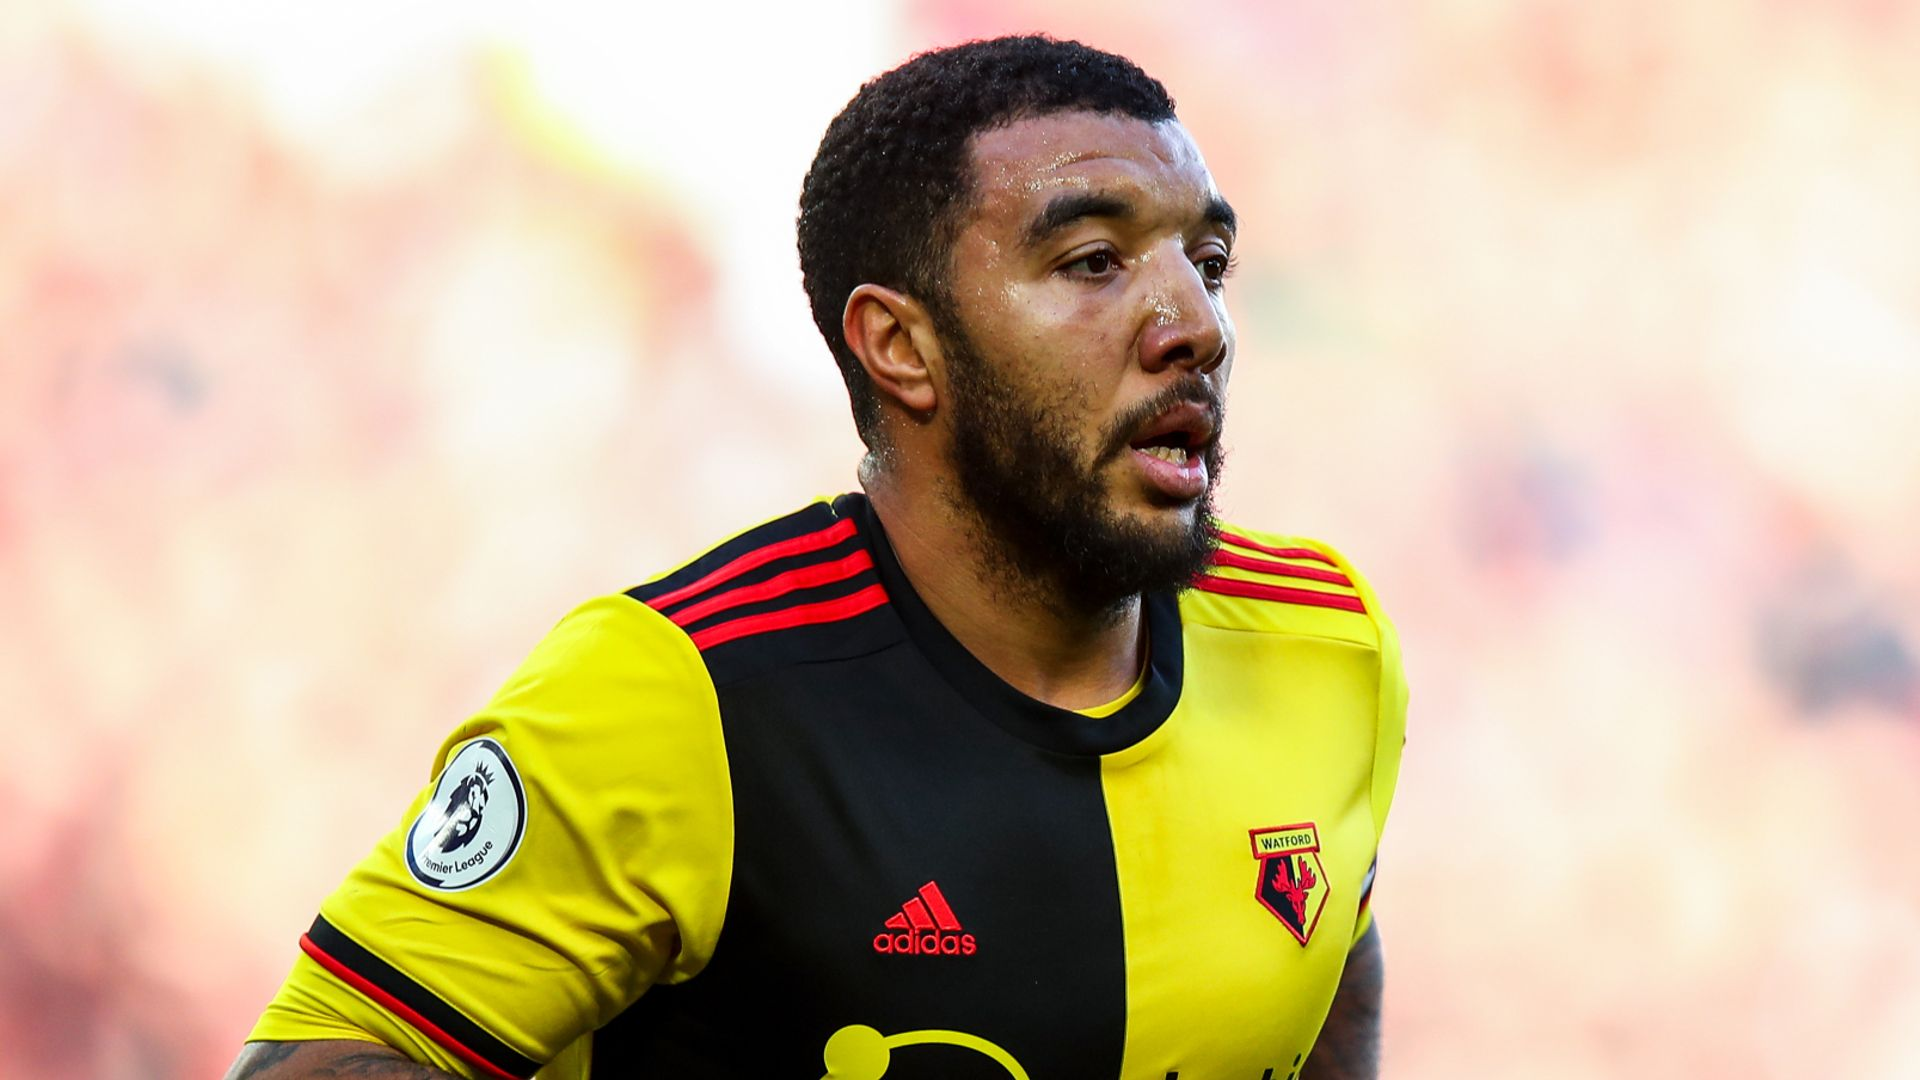 Deeney will return to training after Govt talks